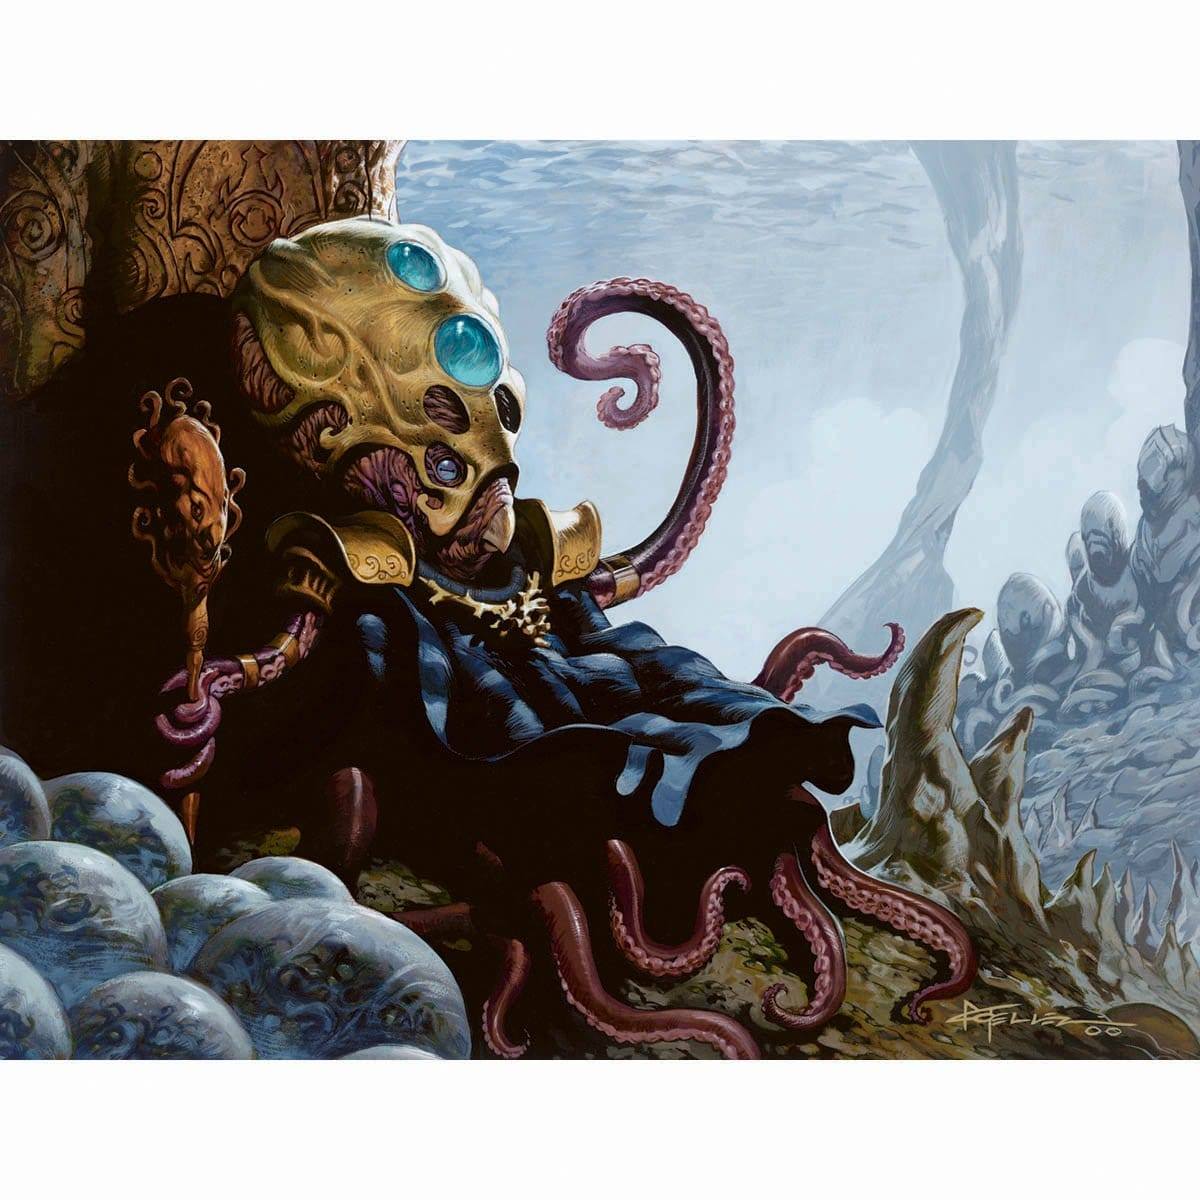 Aboshan, Cephalid Emporer Print - Print - Original Magic Art - Accessories for Magic the Gathering and other card games